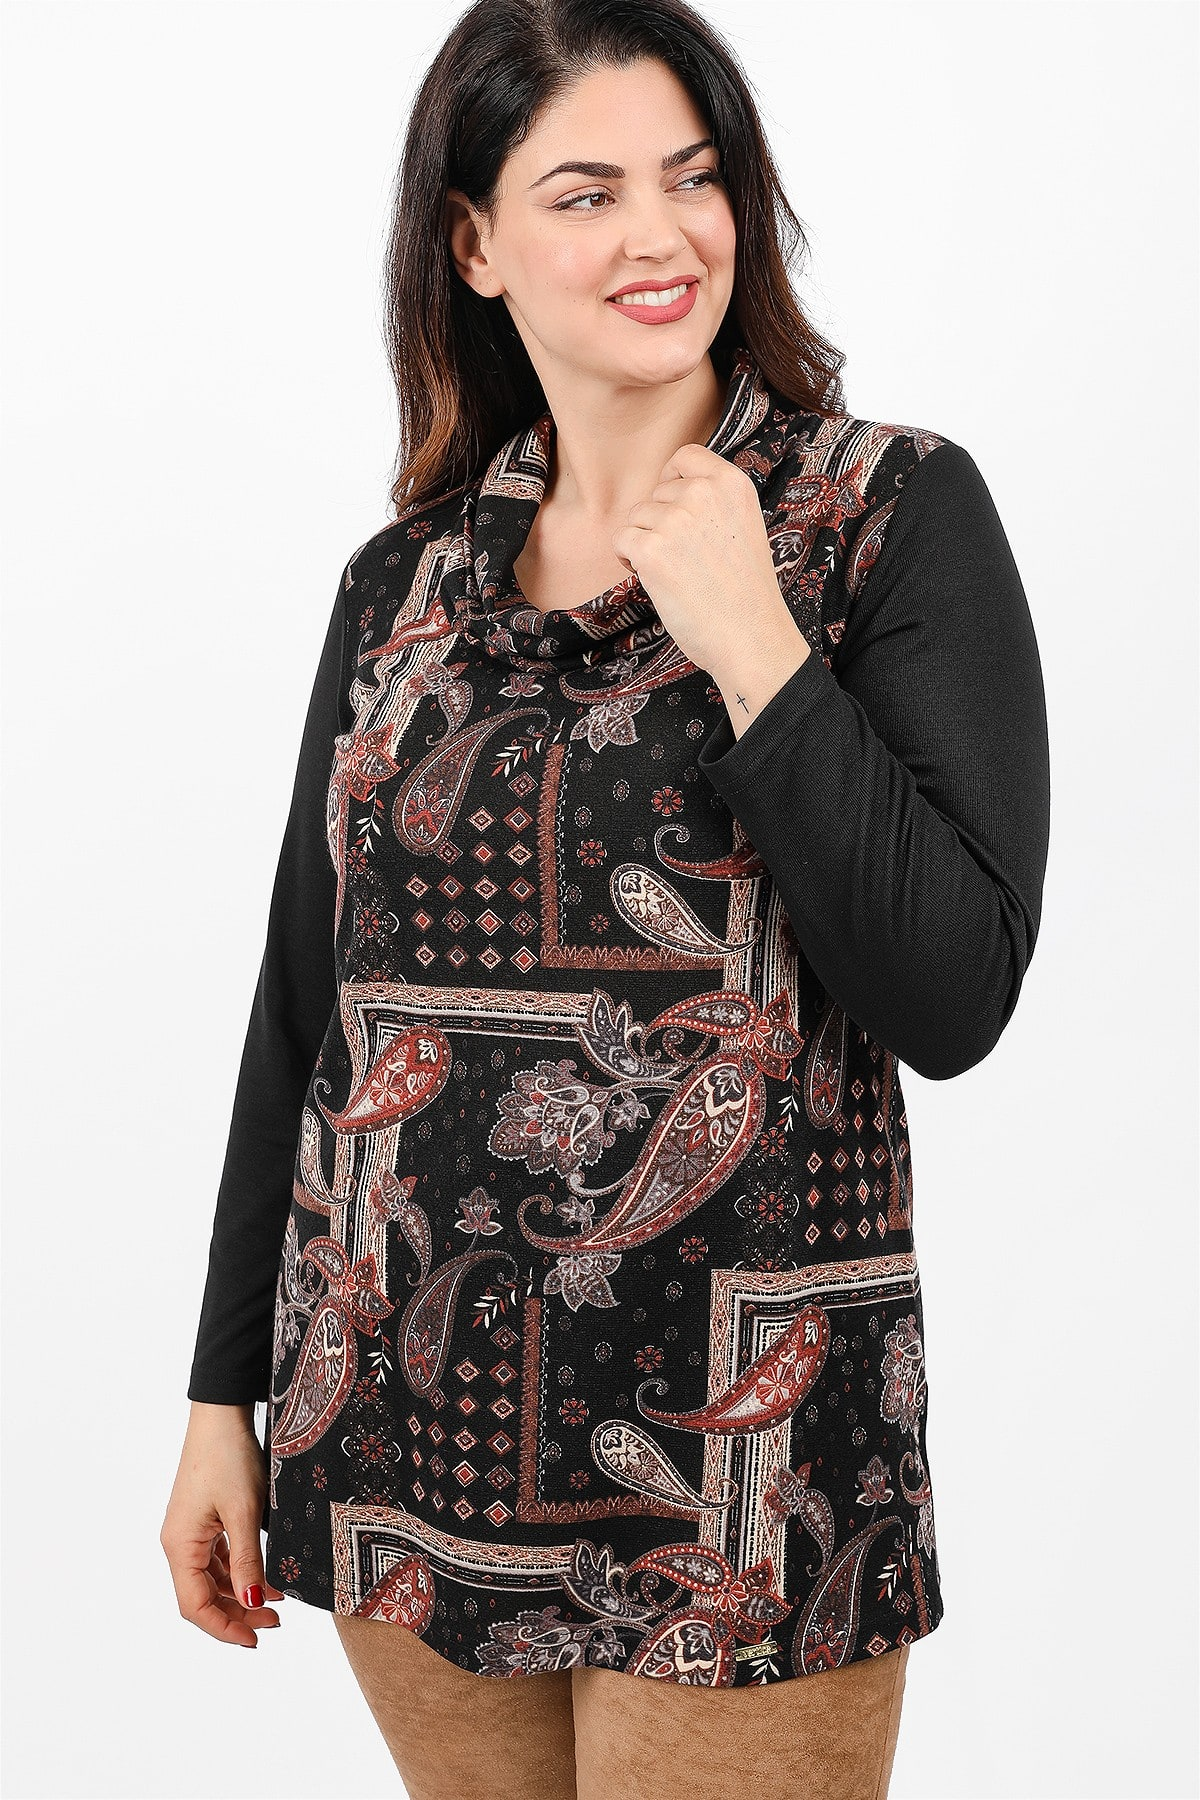 Roll down neck blouse with print at the front view